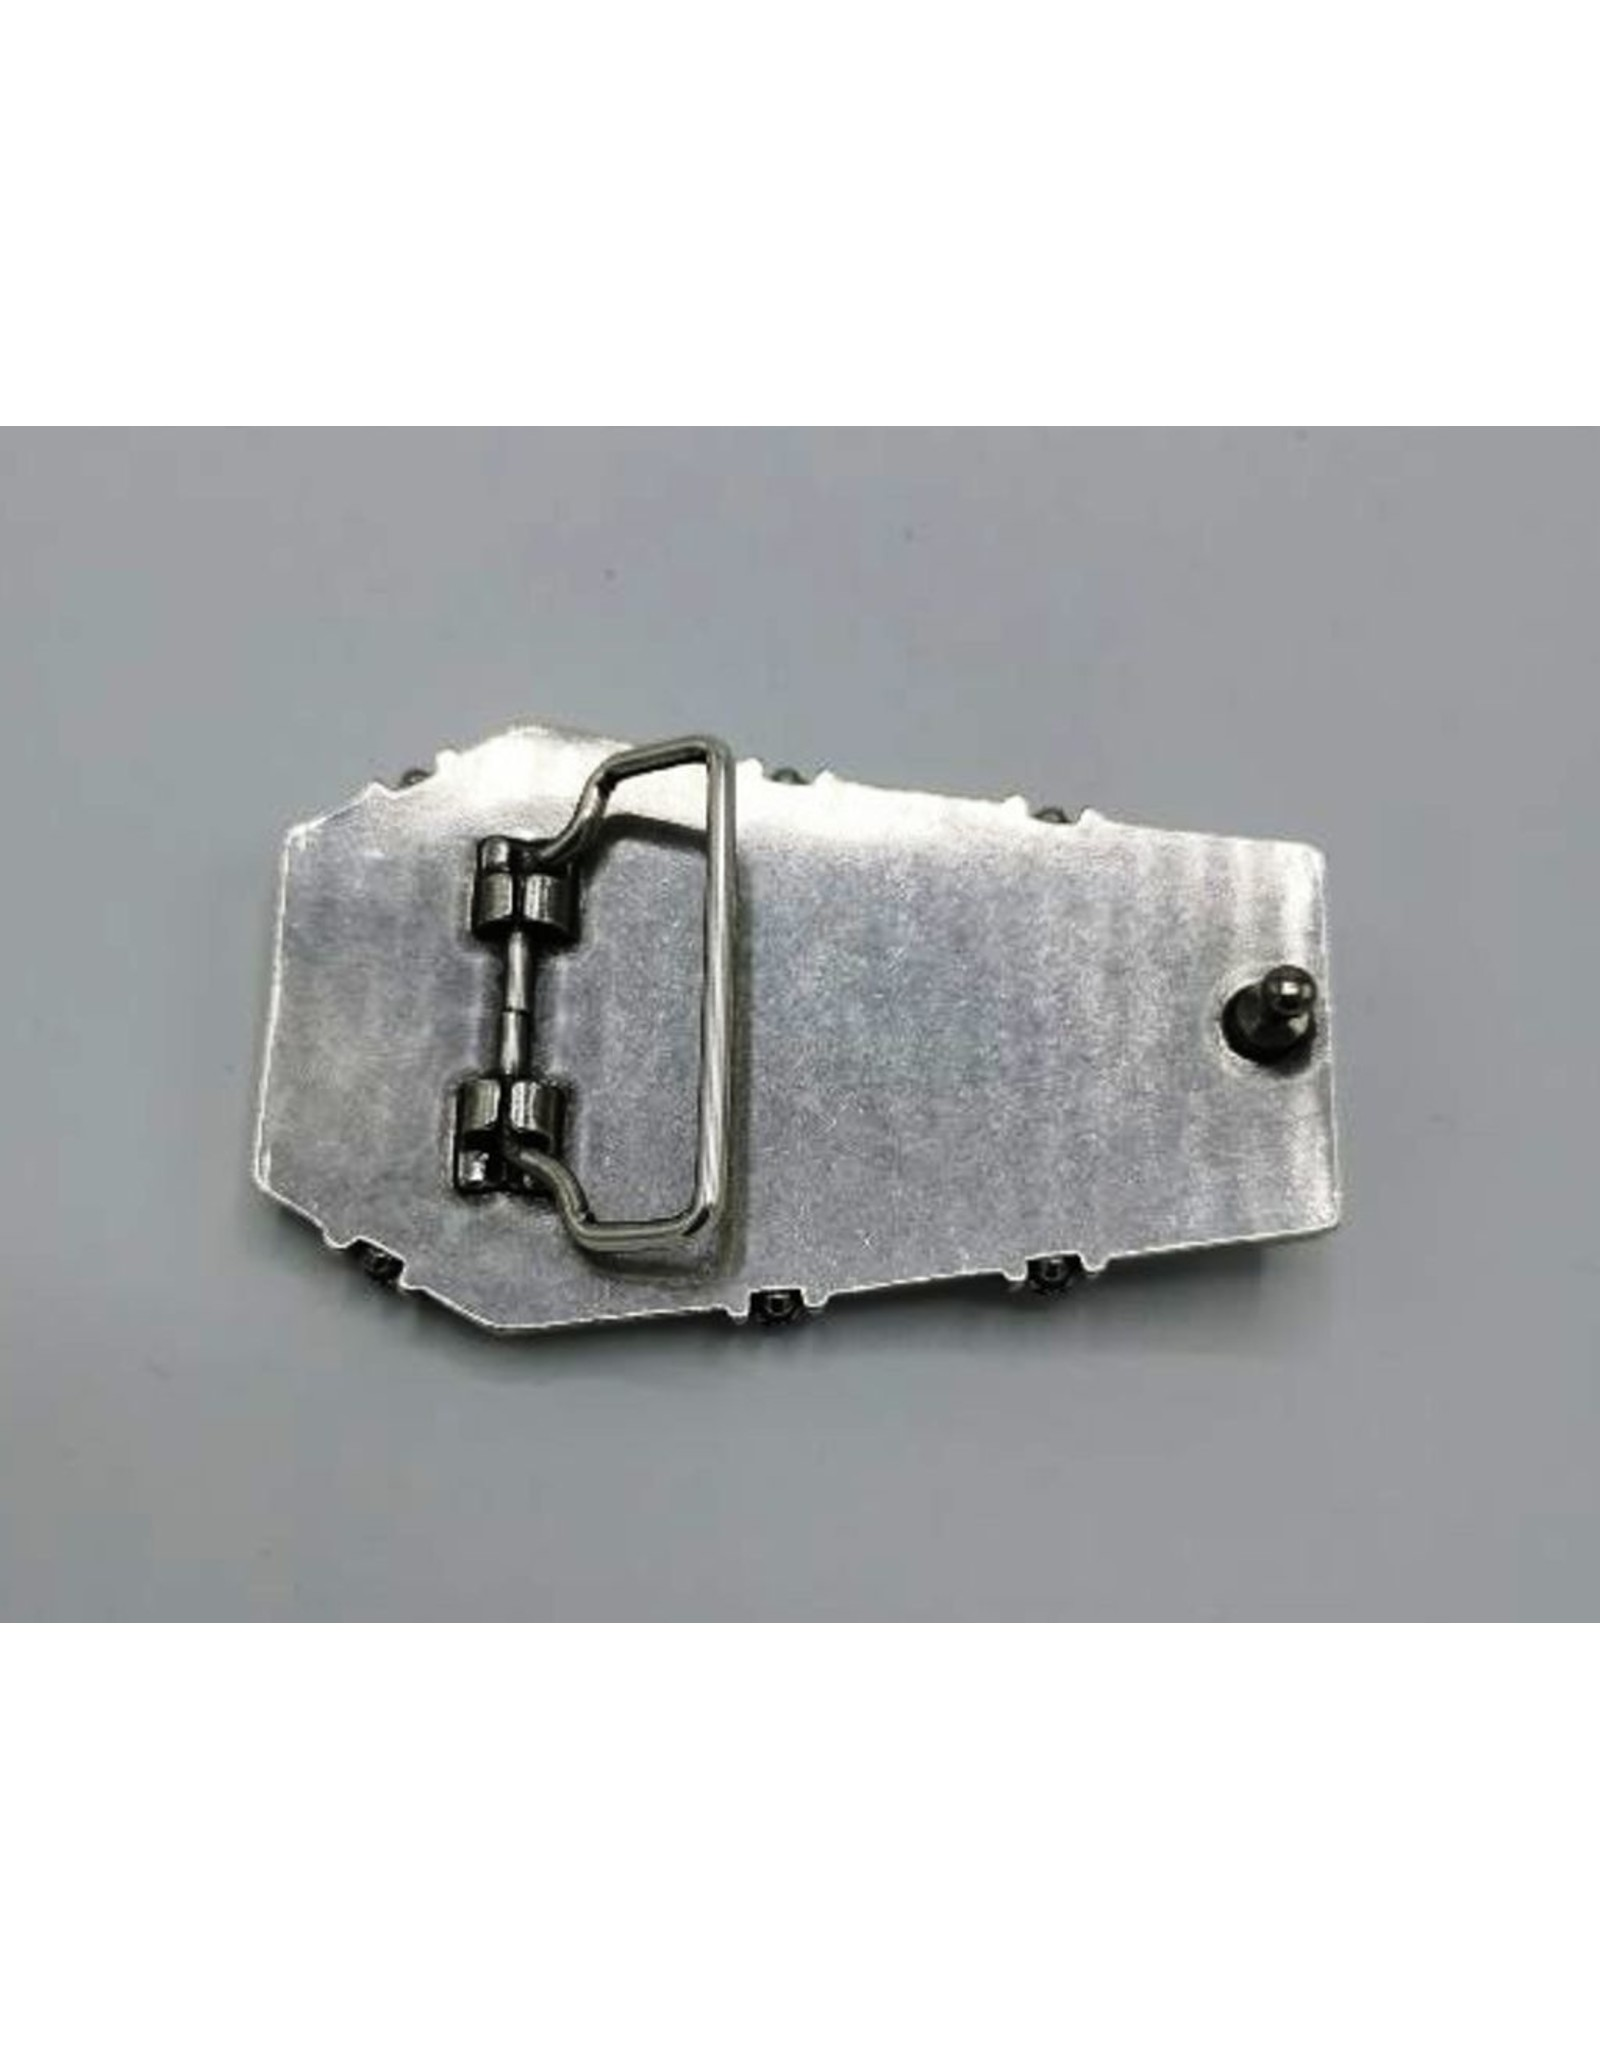 Acco Leather belts and buckles - Buckle Coffin with Skeleton